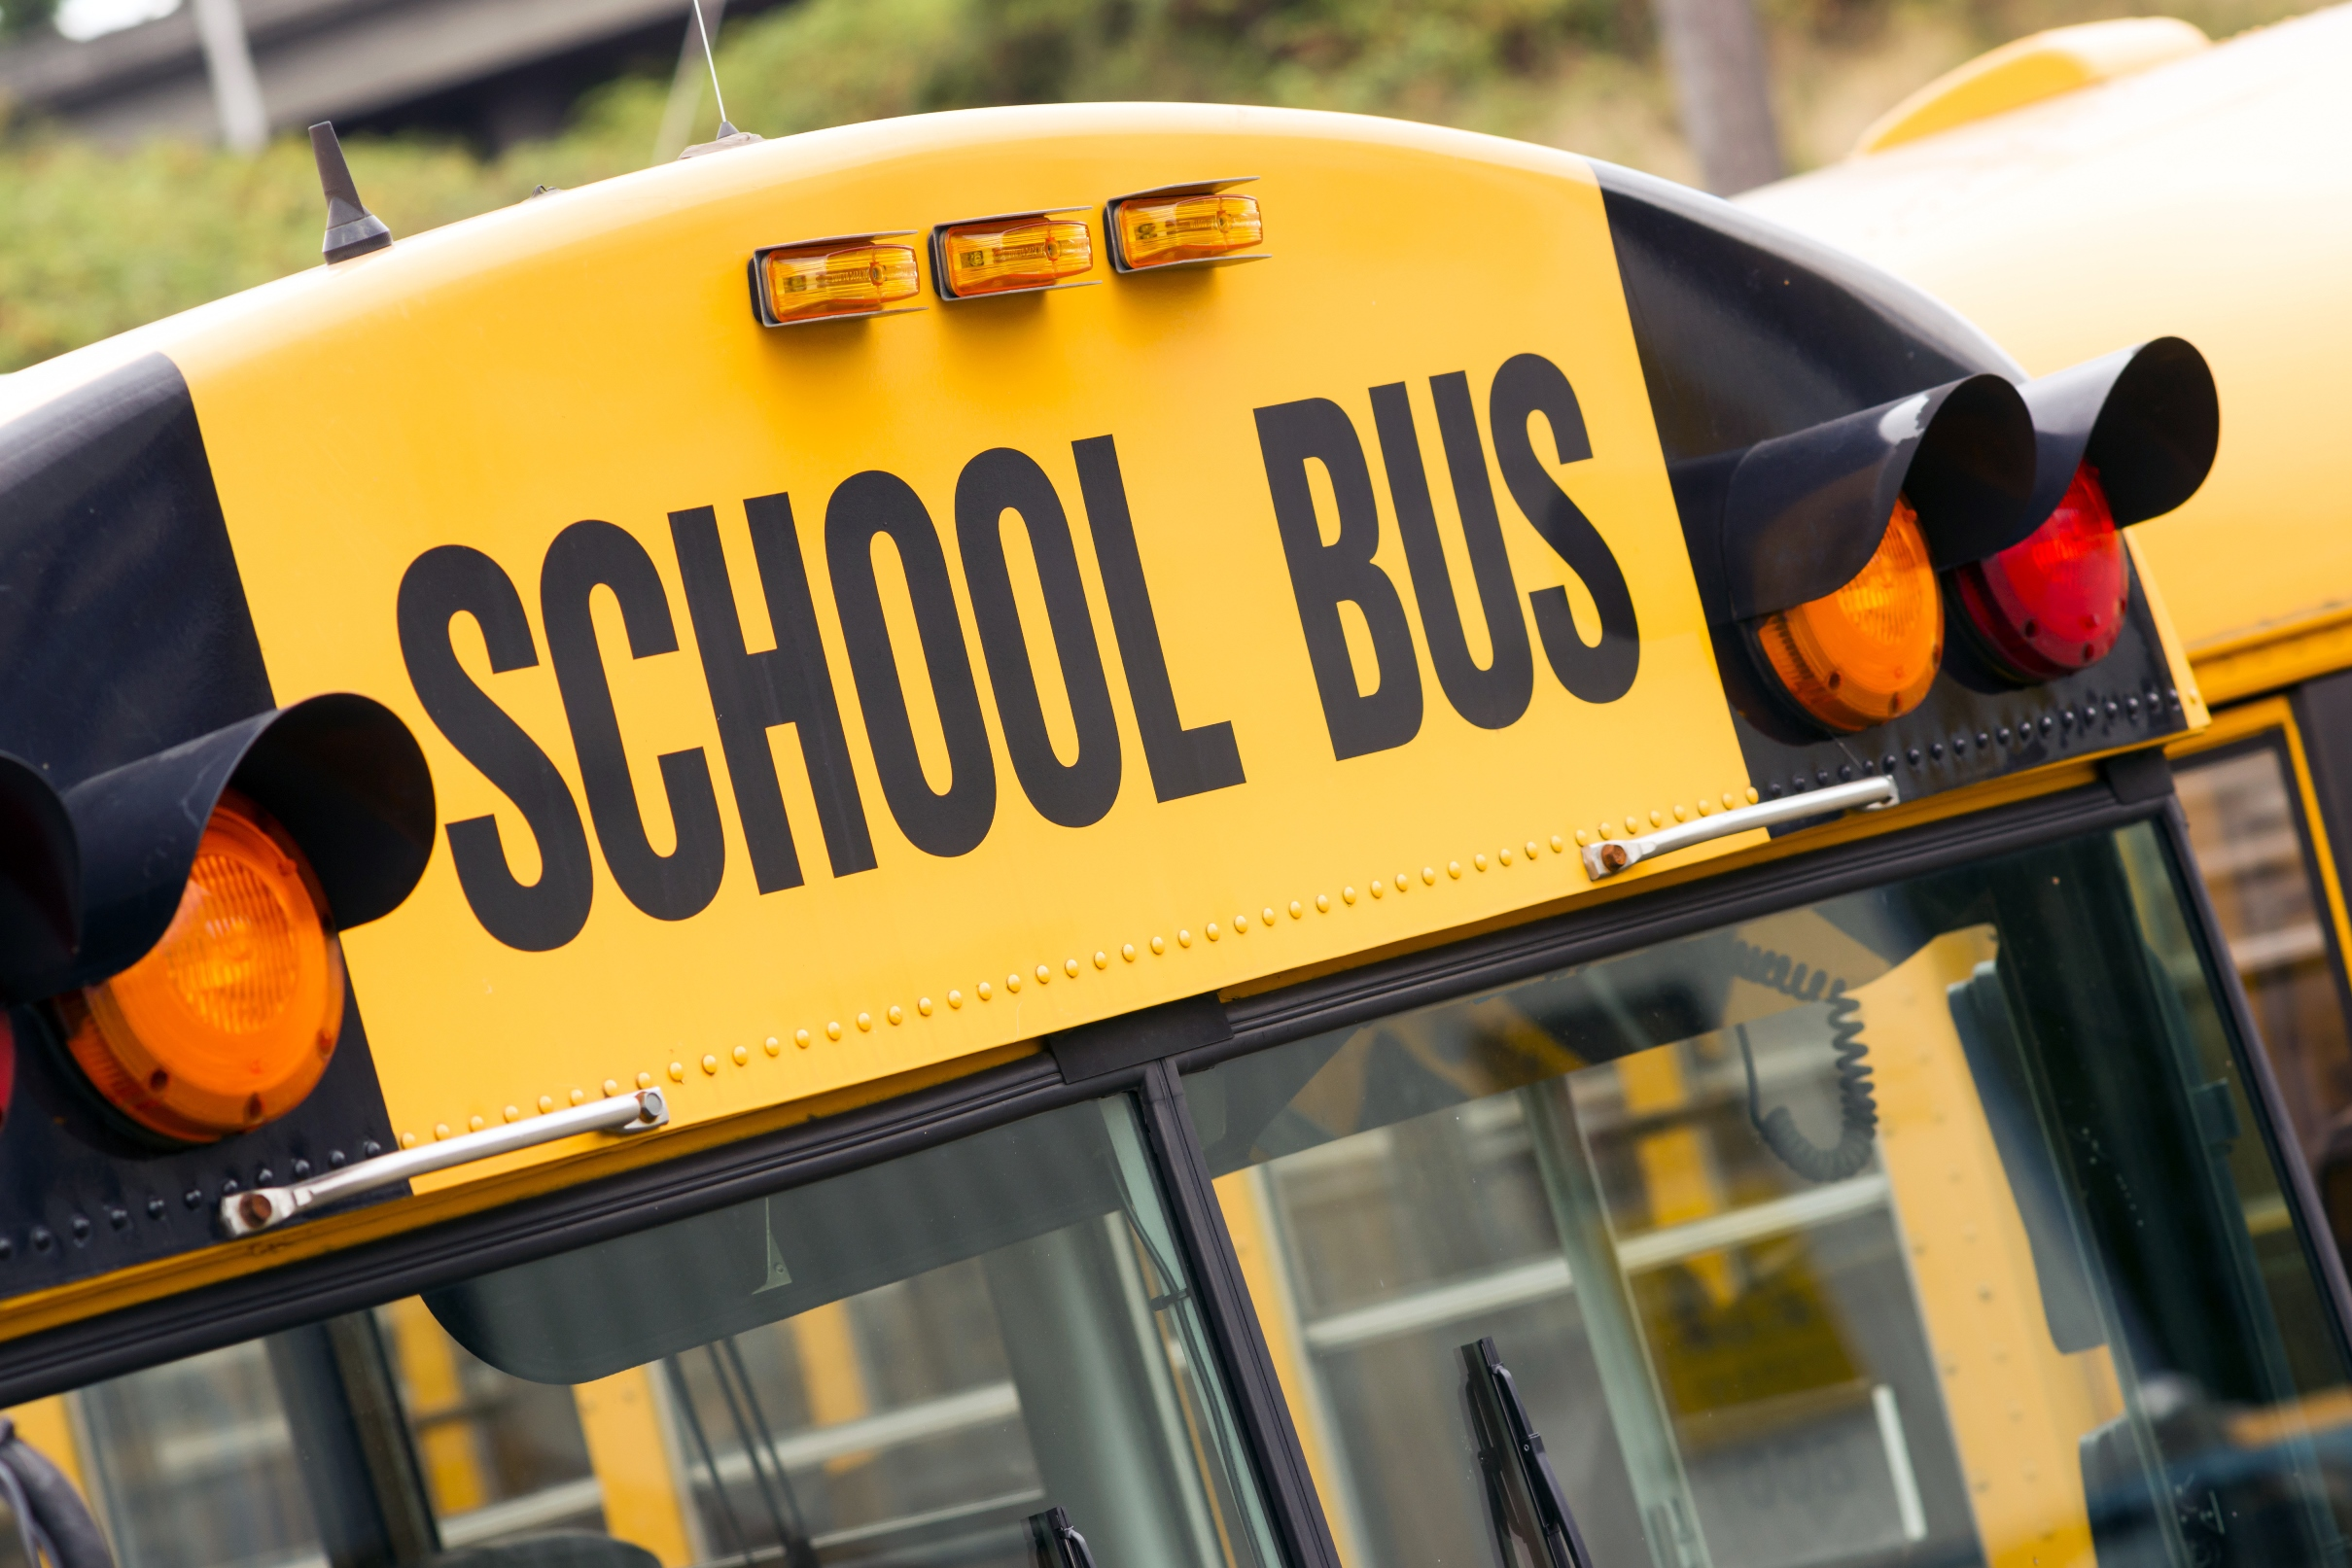 Ex-bus driver sentenced to 20 days in jail for DUI